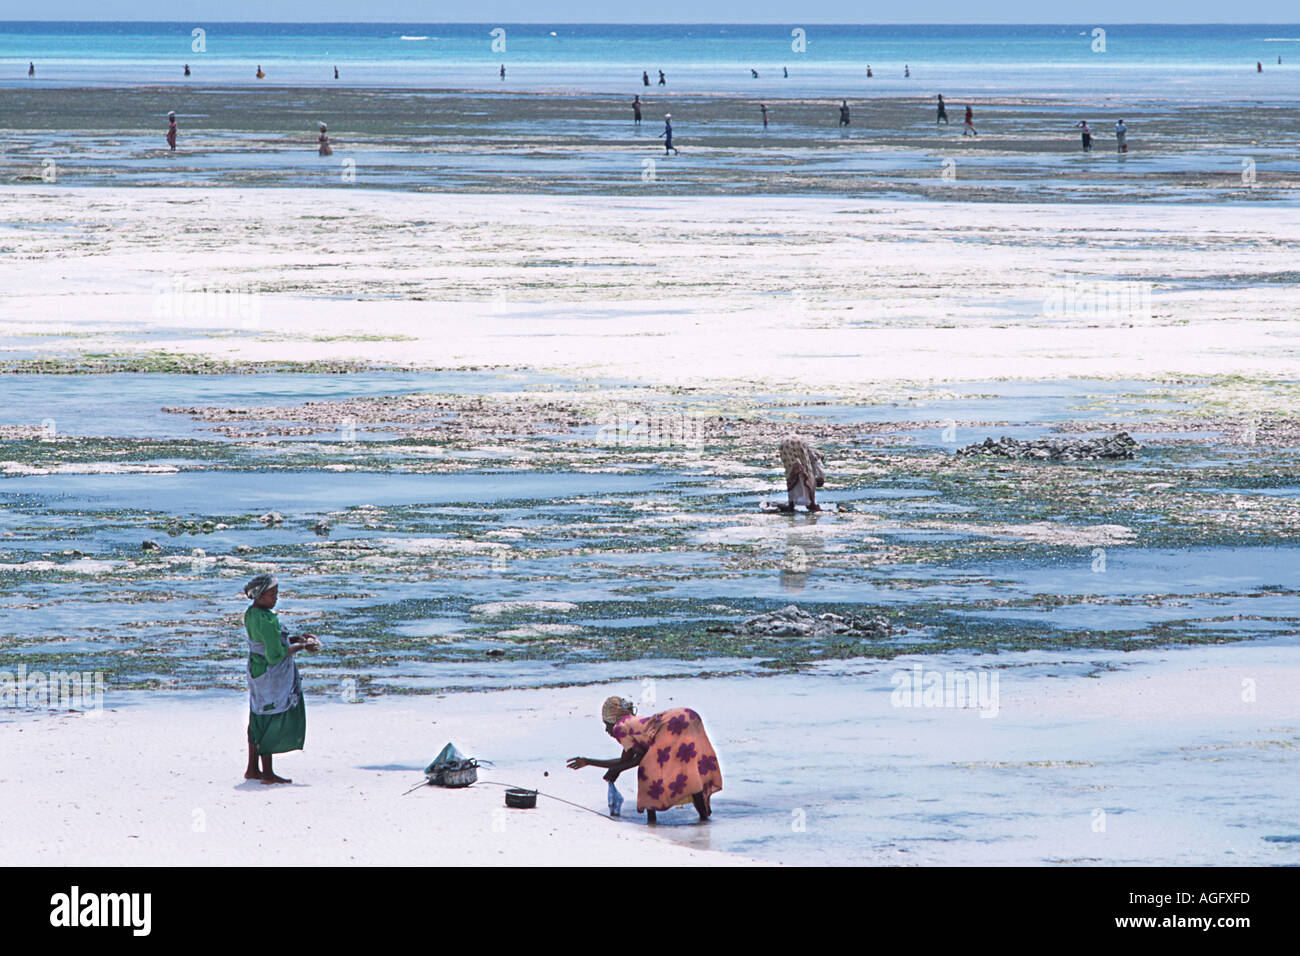 Women on the beach at low tide to collect seashells and seaweed Nungwi Northern Unguja Zanzibar East Africa - Stock Image